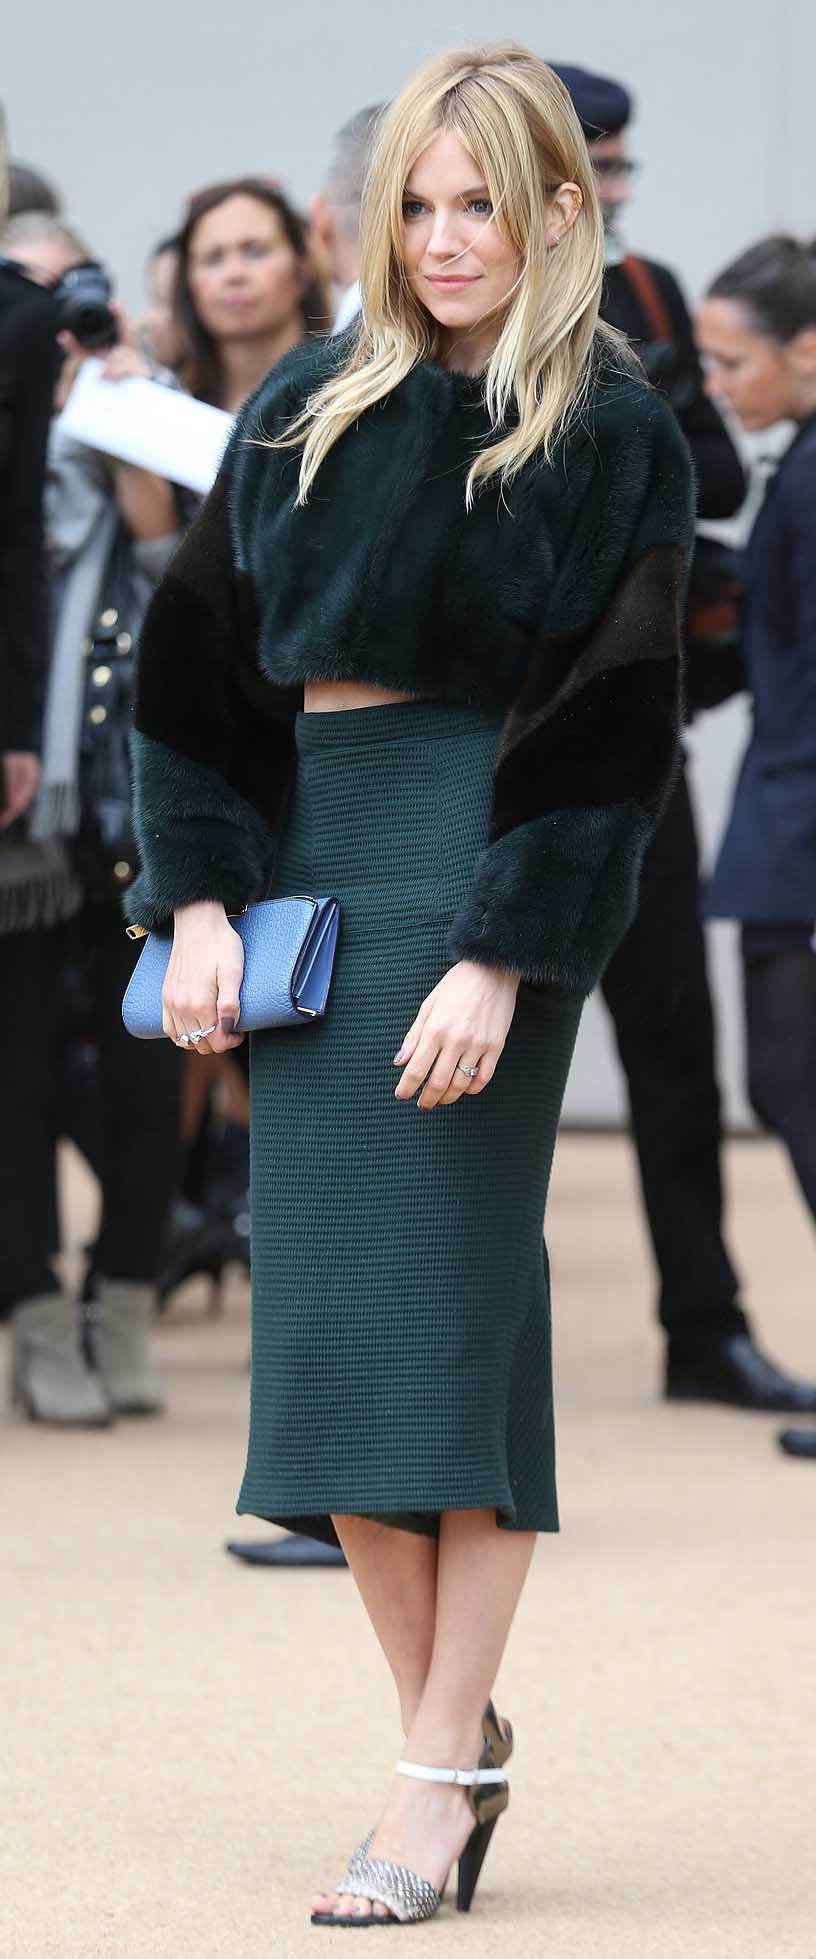 green-dark-midi-skirt-green-dark-jacket-fur-fuzz-white-shoe-sandalh-siennamiller-fall-winter-blonde-dinner.jpg